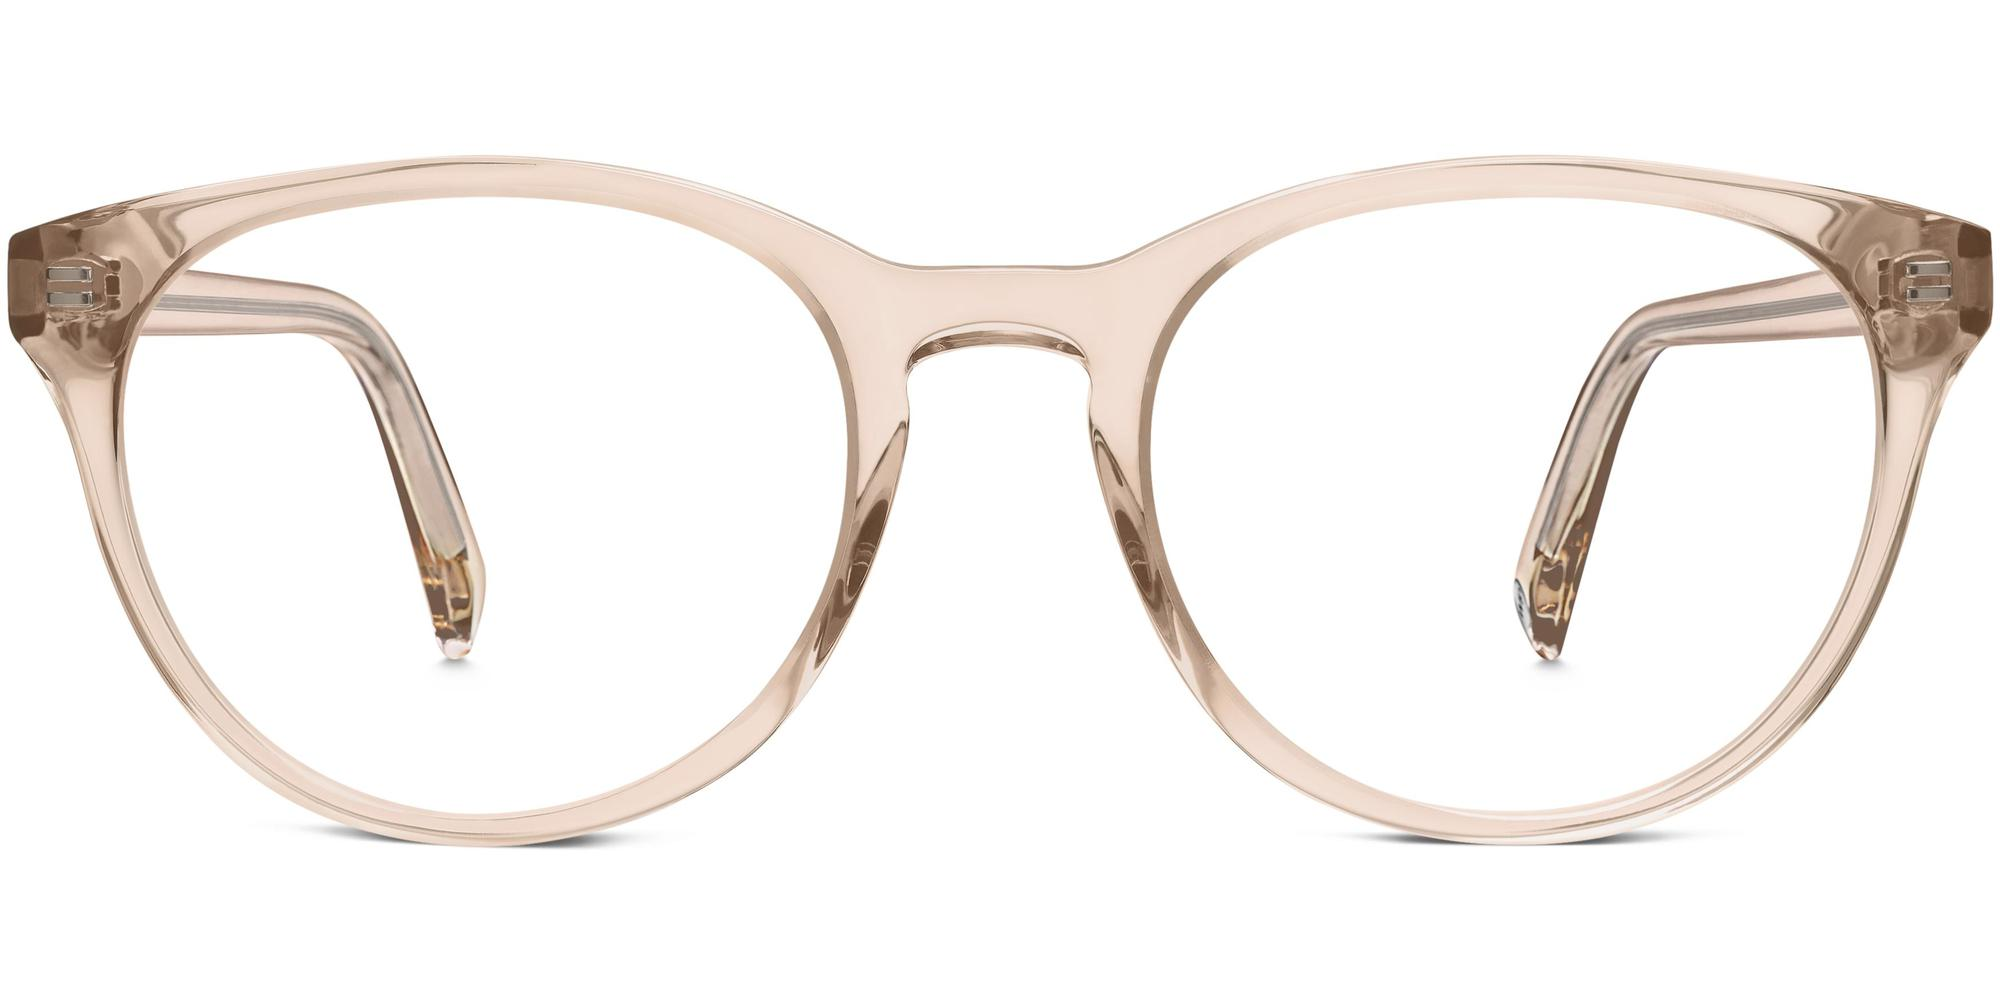 Front View Image of Jane Eyeglasses Collection, by Warby Parker Brand, in Elderflower Crystal Color